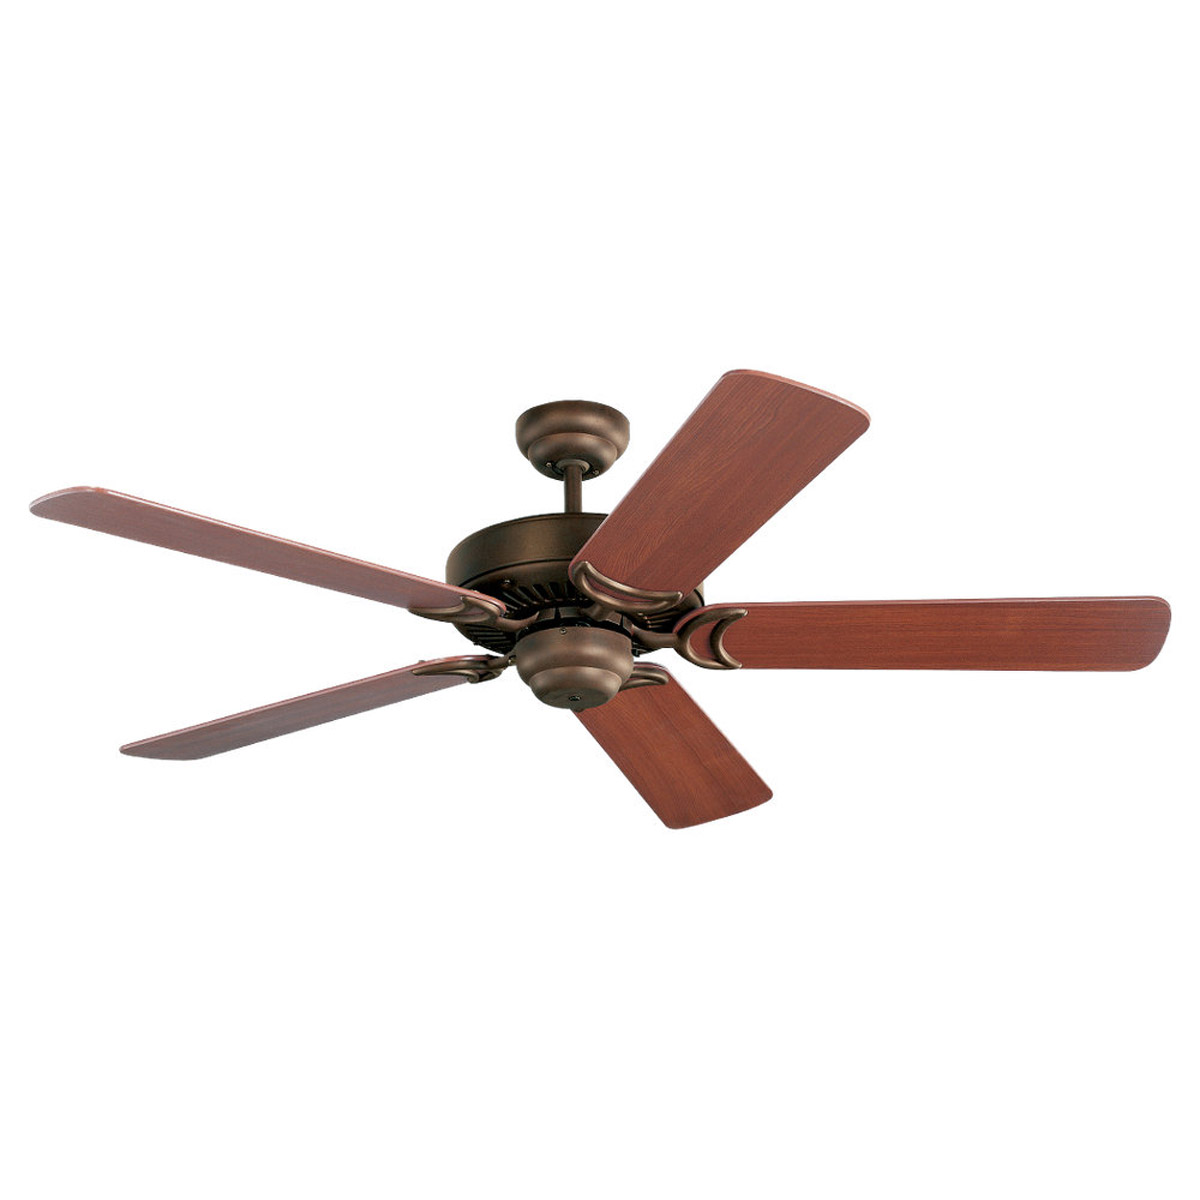 Sea Gull Lighting 52in Celebrity Deluxe Ceiling Fan in Misted Bronze 1535-814 photo